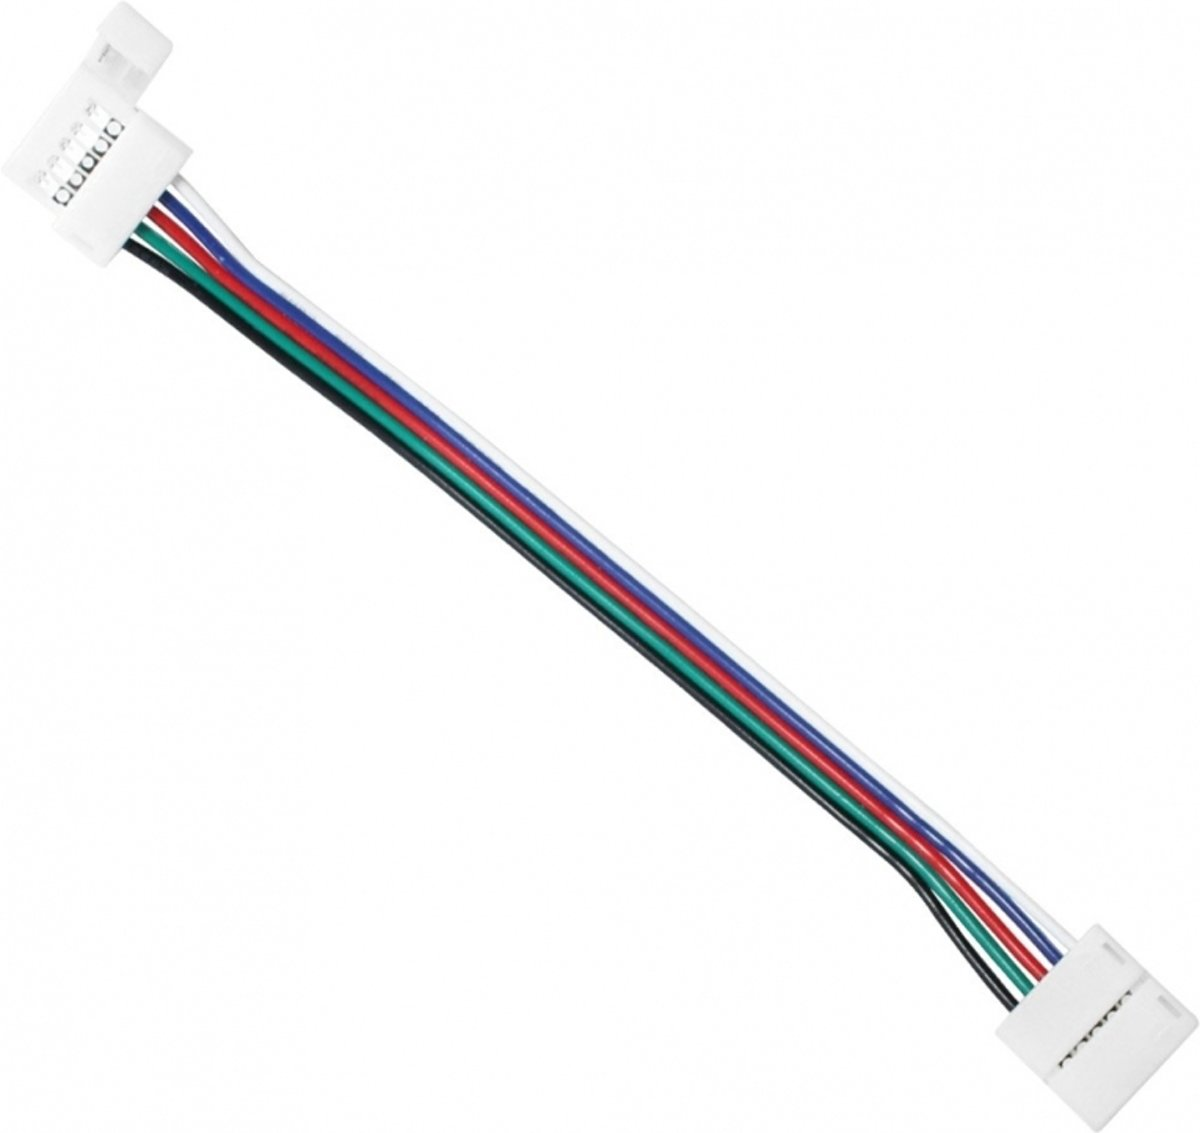 Ledstrips Koppelen Waterproof Ledstrip Connector Cable Click To Click Rgb Outdoor